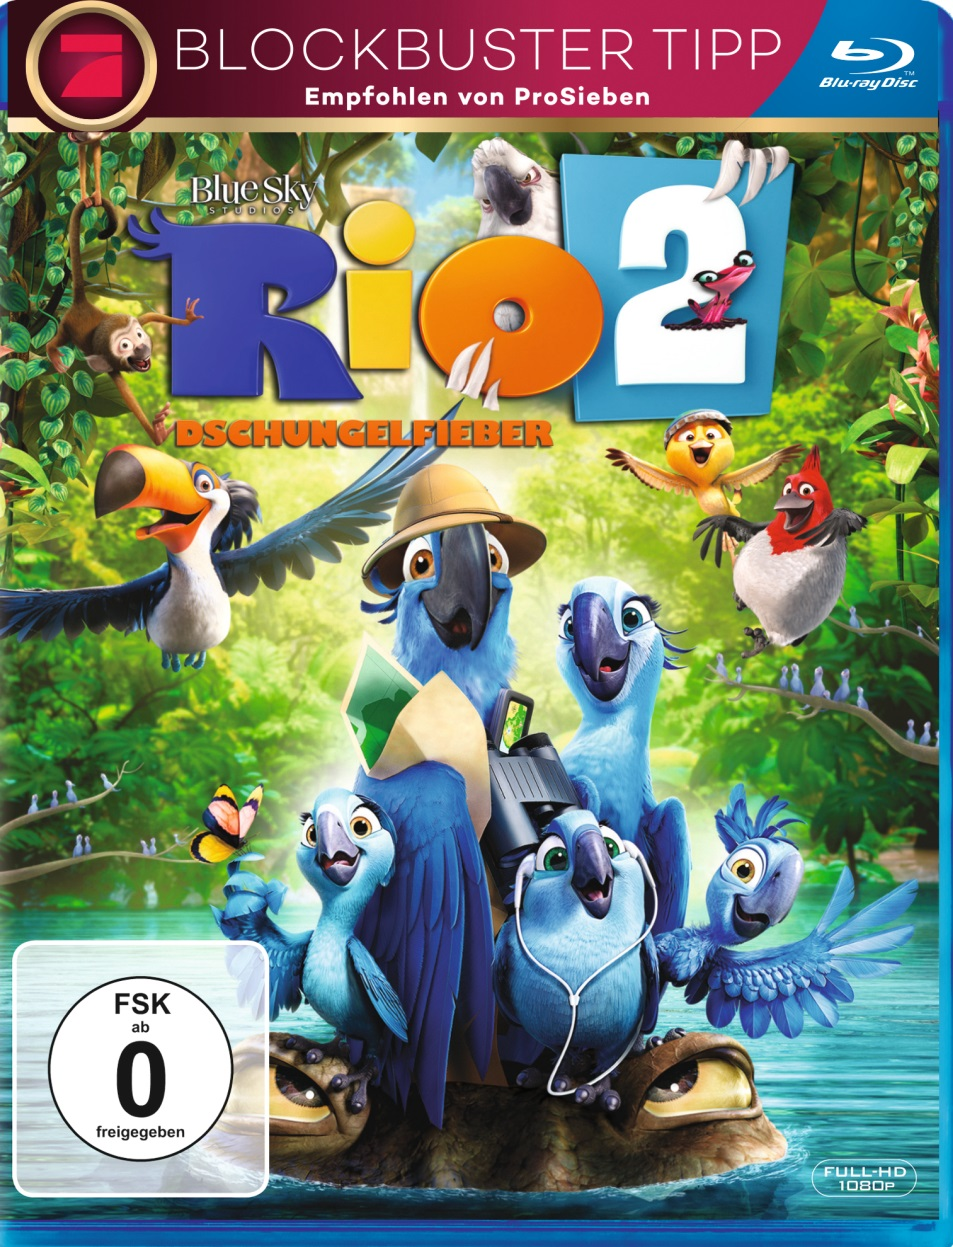 blu ray kritik rio 2 dschungelfieber full hd review rezension. Black Bedroom Furniture Sets. Home Design Ideas